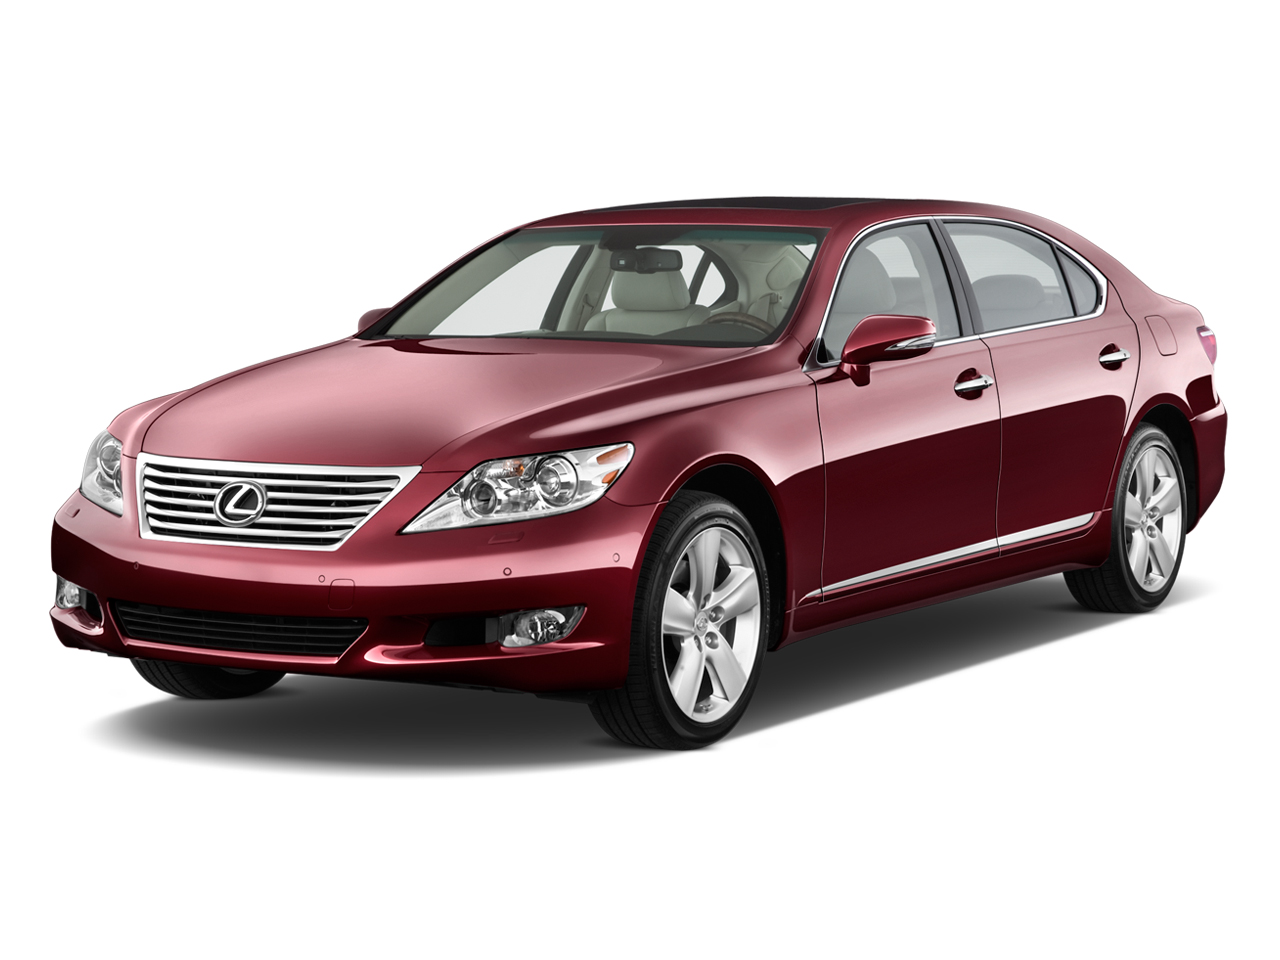 2011 lexus ls 460 review and news motorauthority. Black Bedroom Furniture Sets. Home Design Ideas